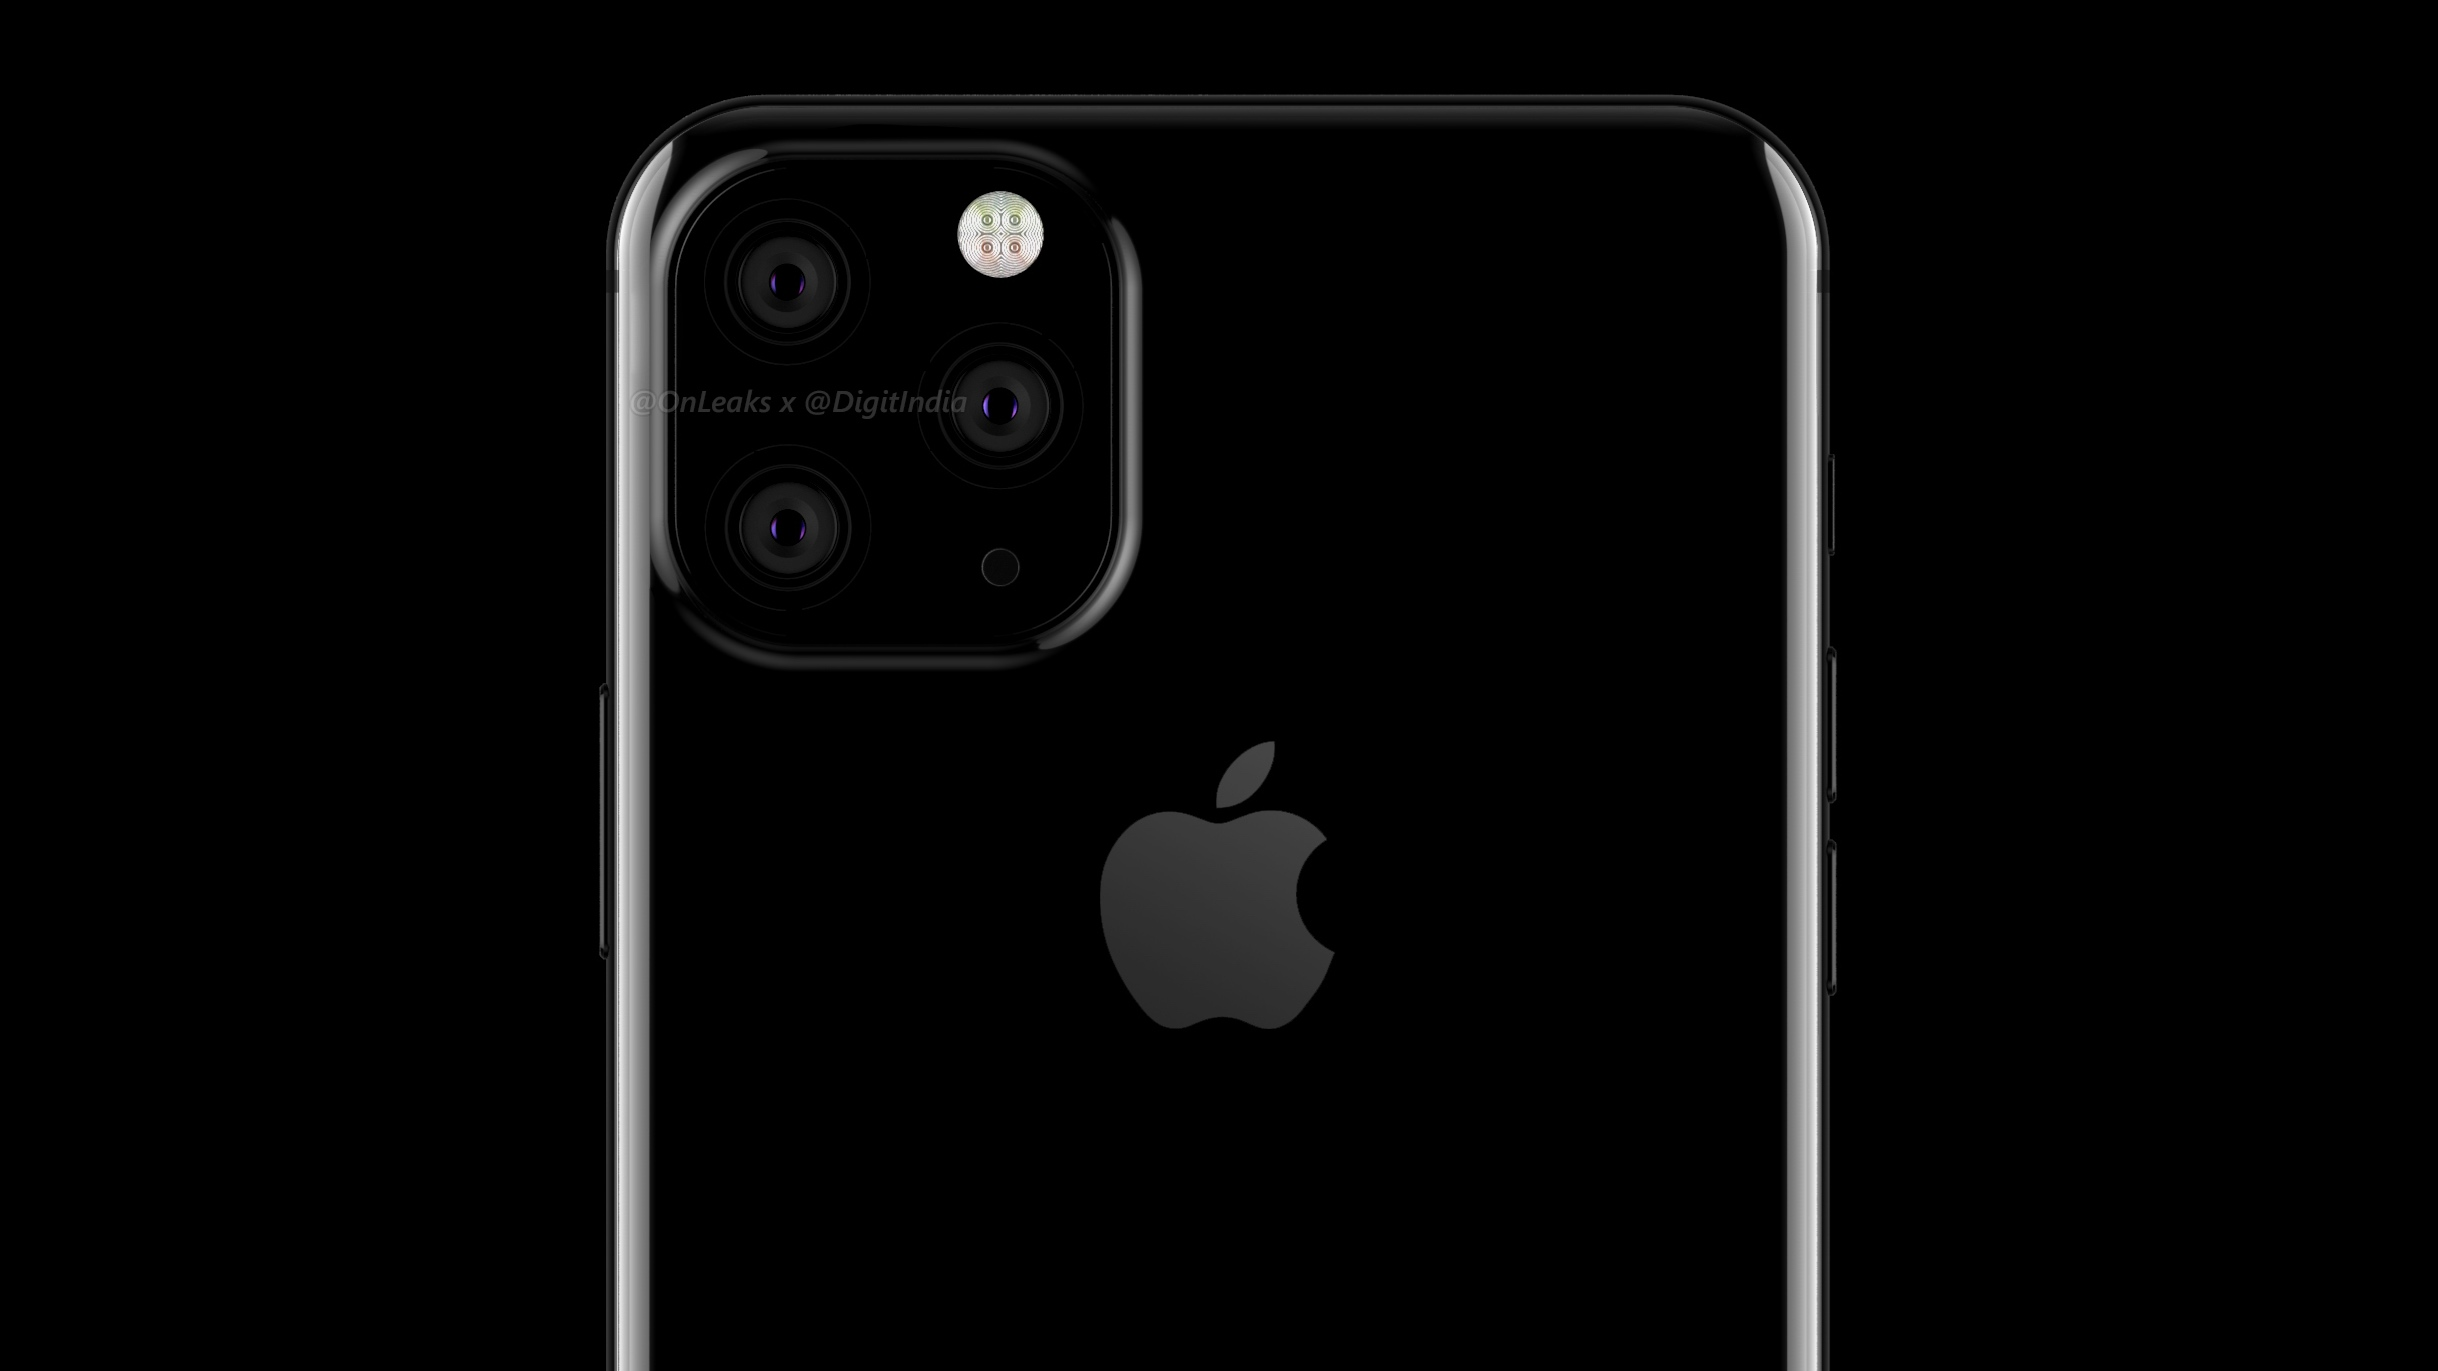 iPhone rumor OnLeaks Digit